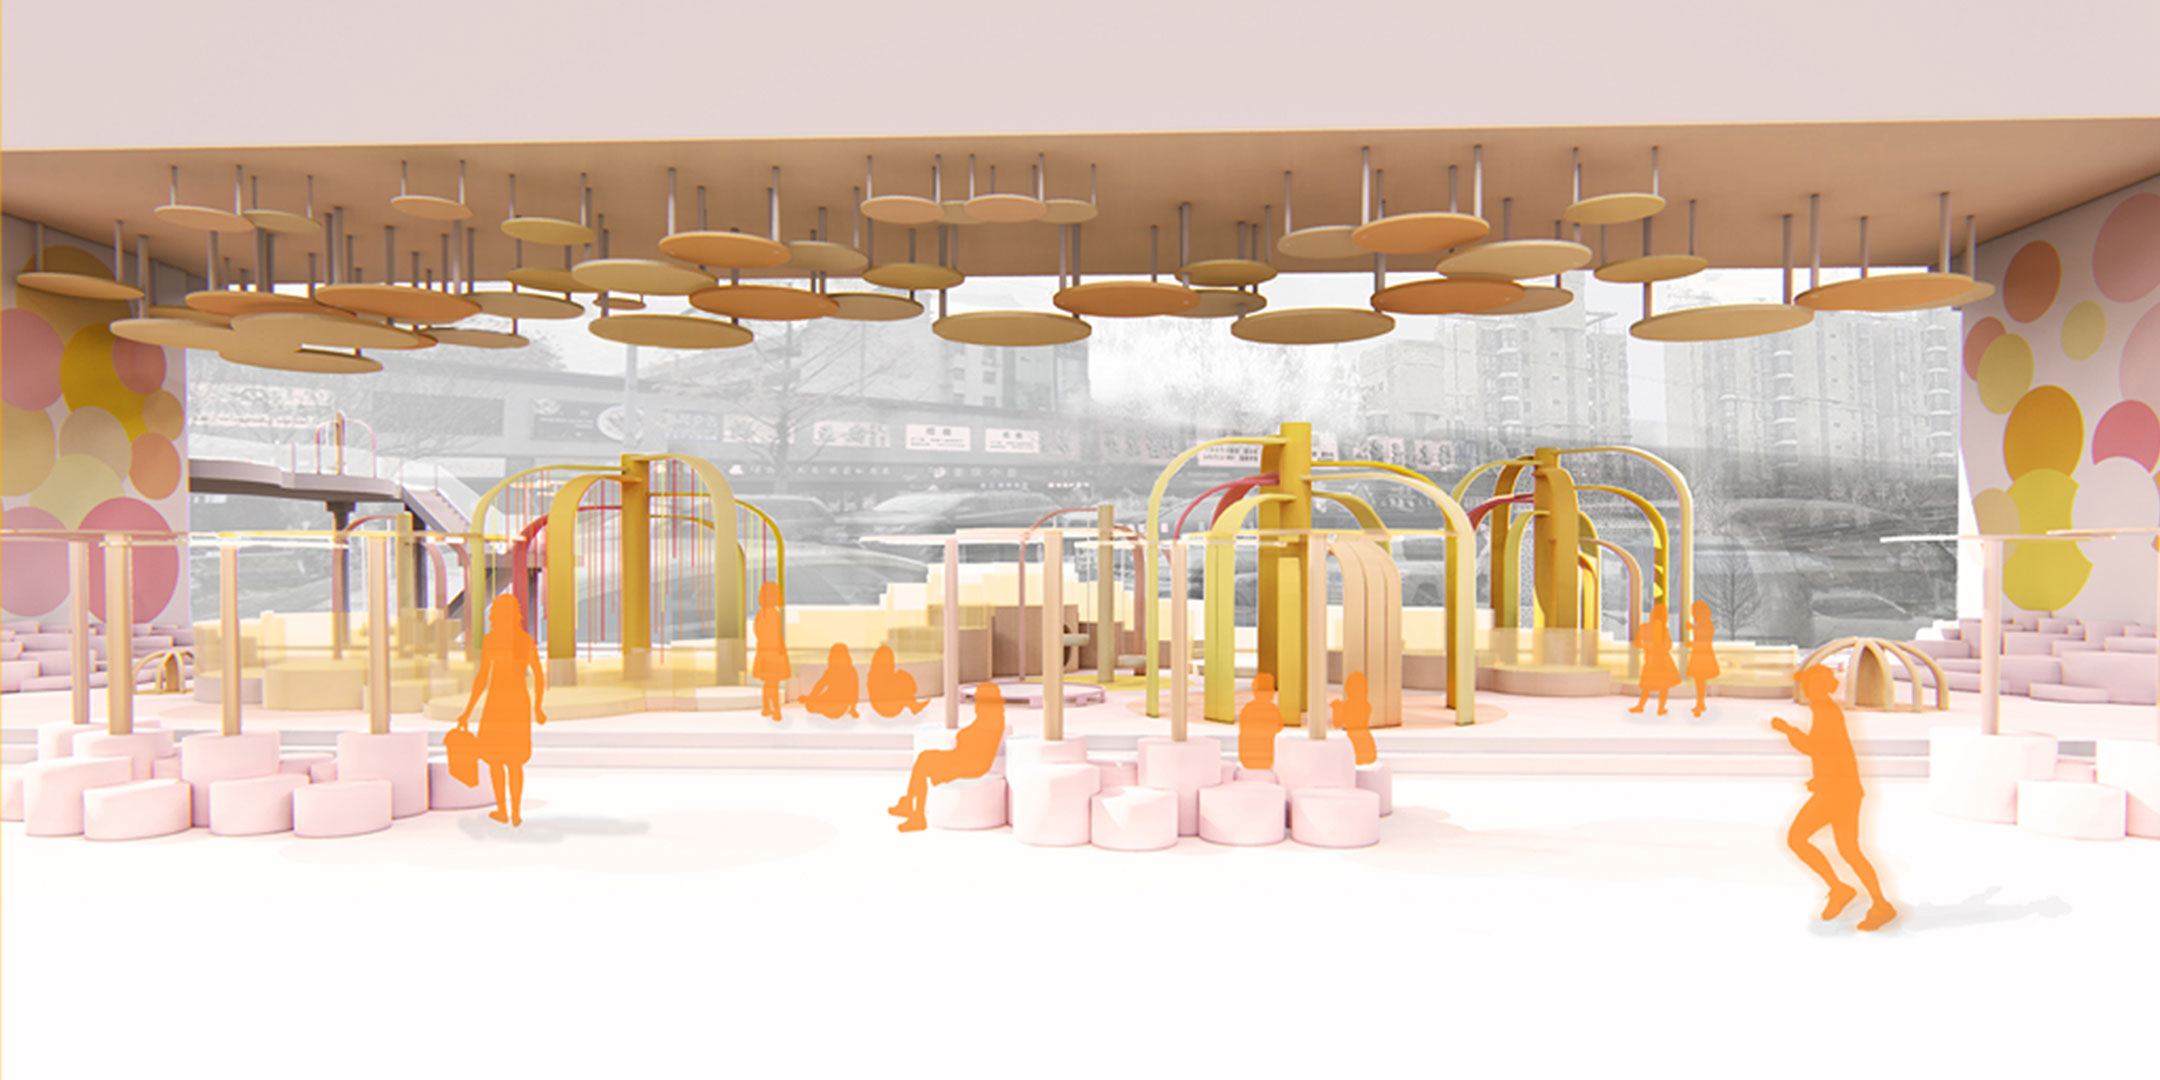 Image depicts a concept for 'The Candy Playground', a child's play area.